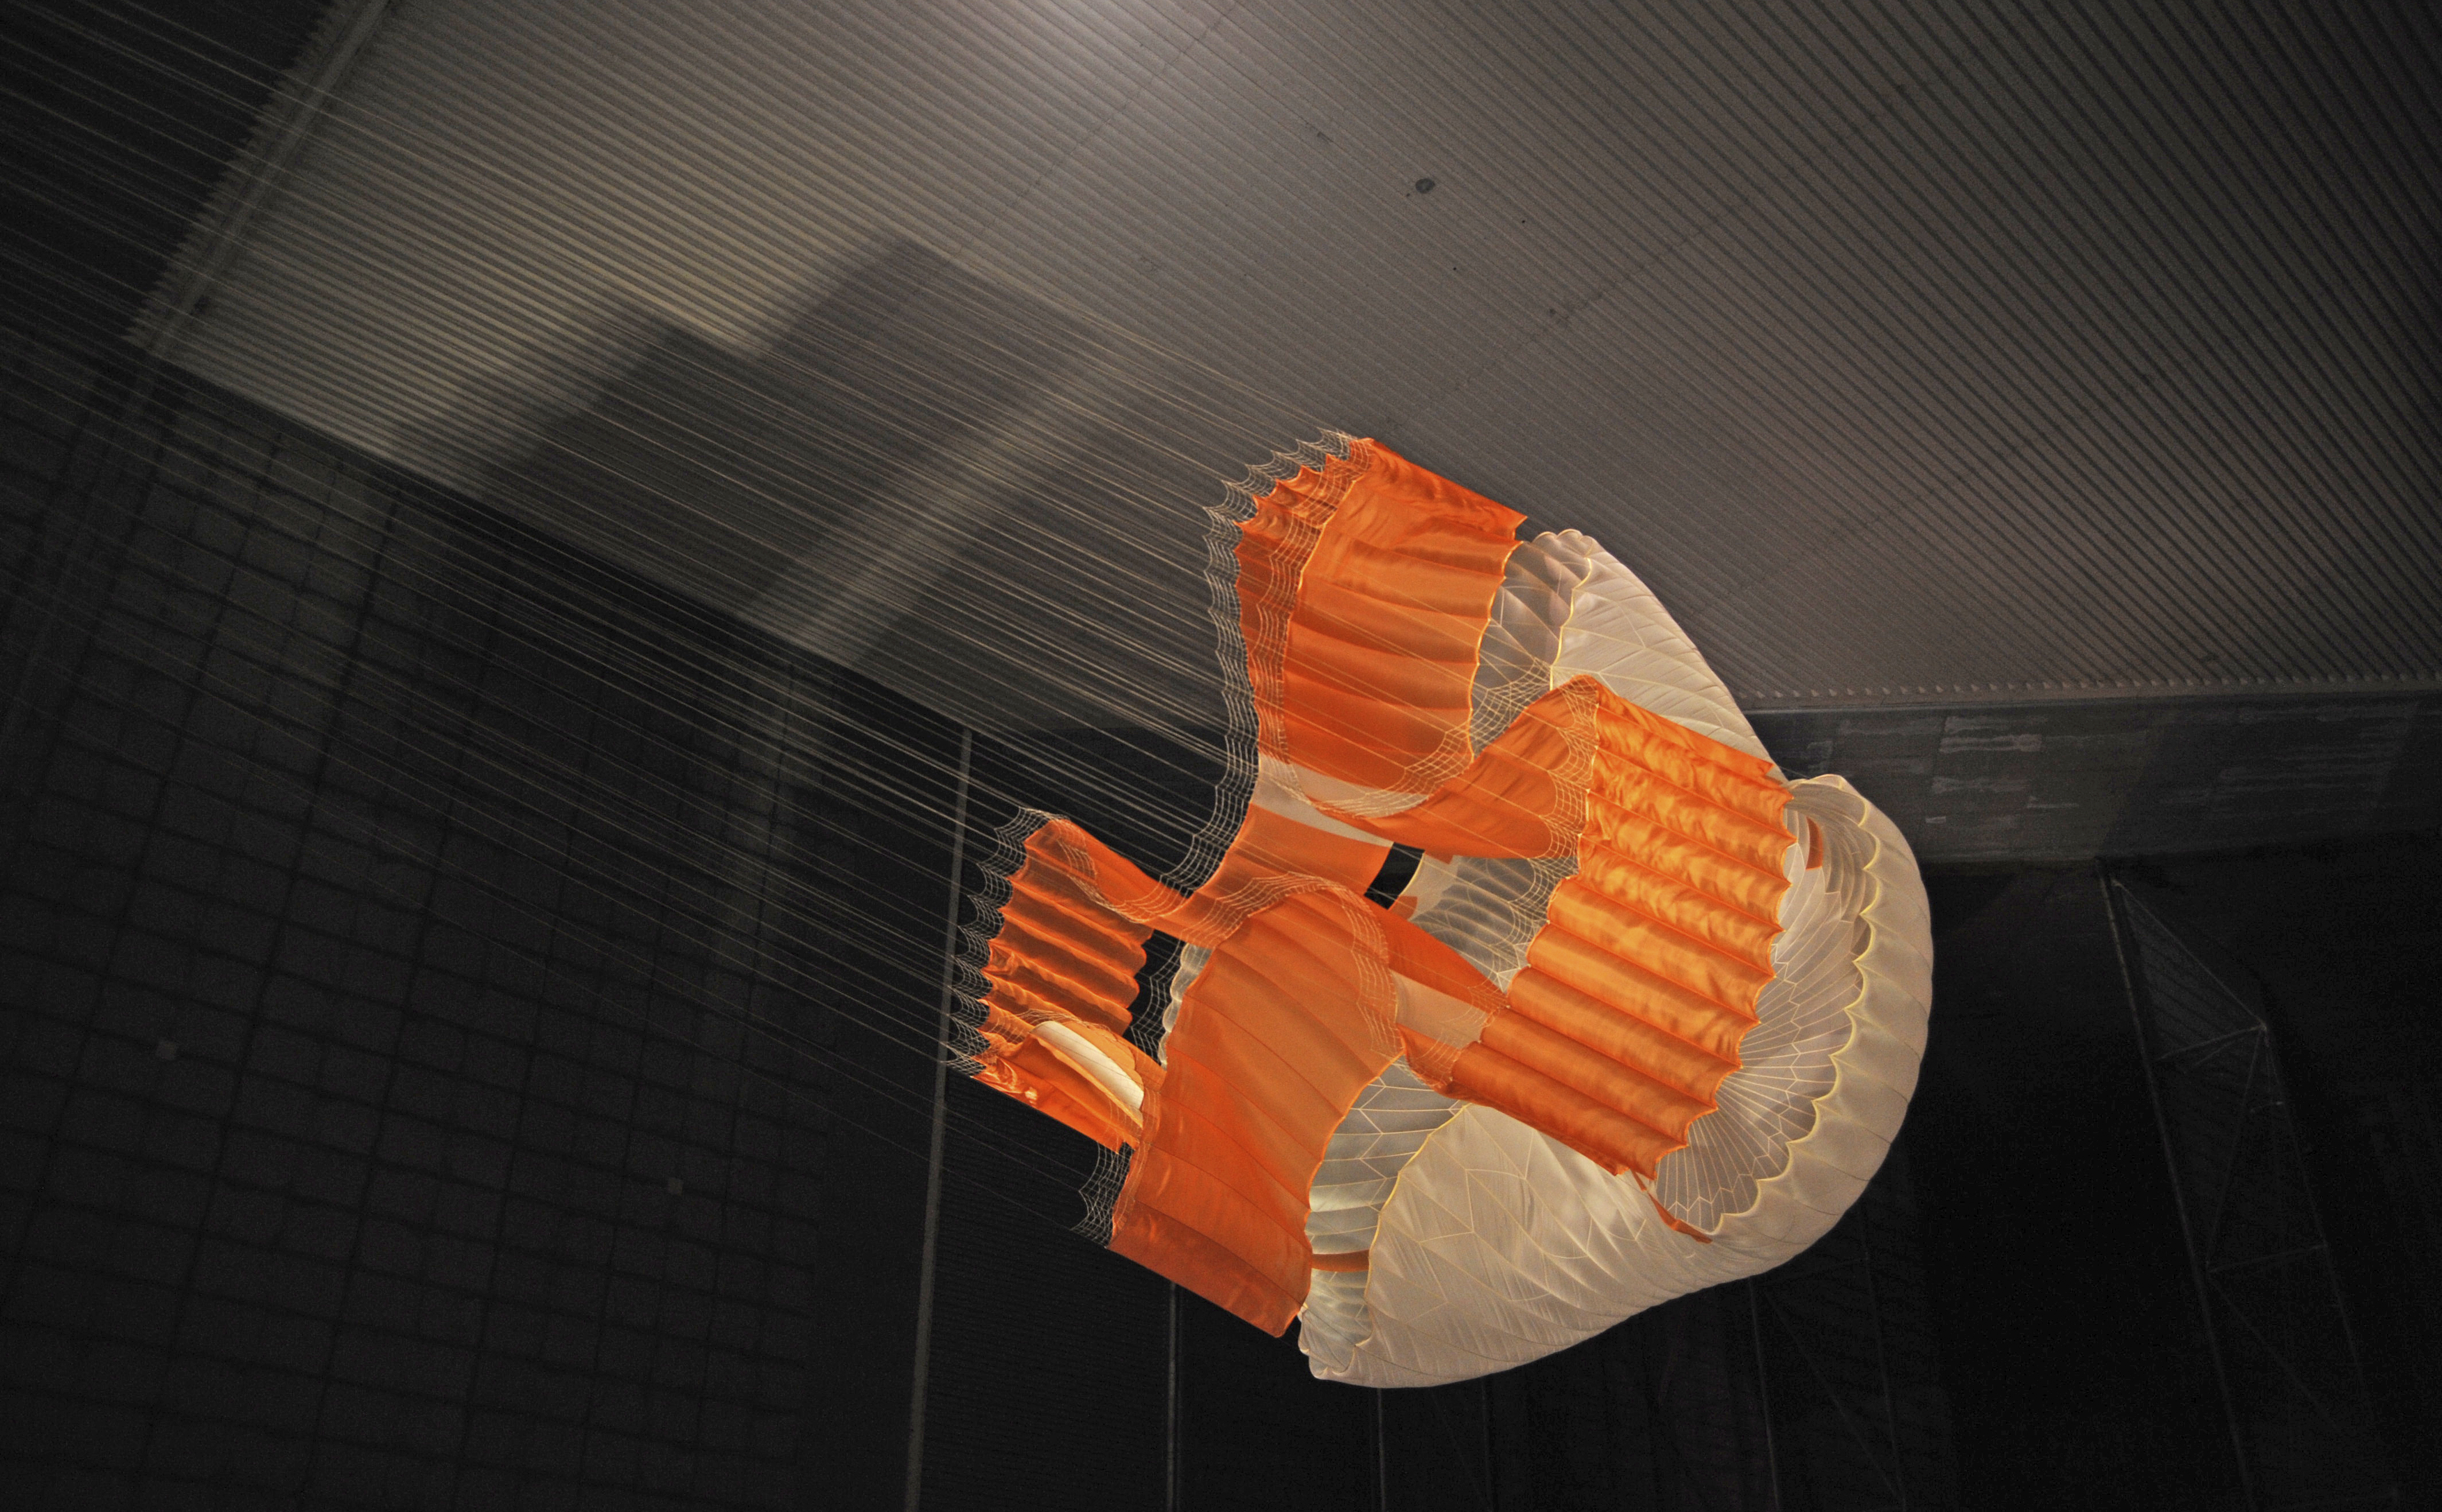 Parachute Opening During Tests for Mars Science Laboratory